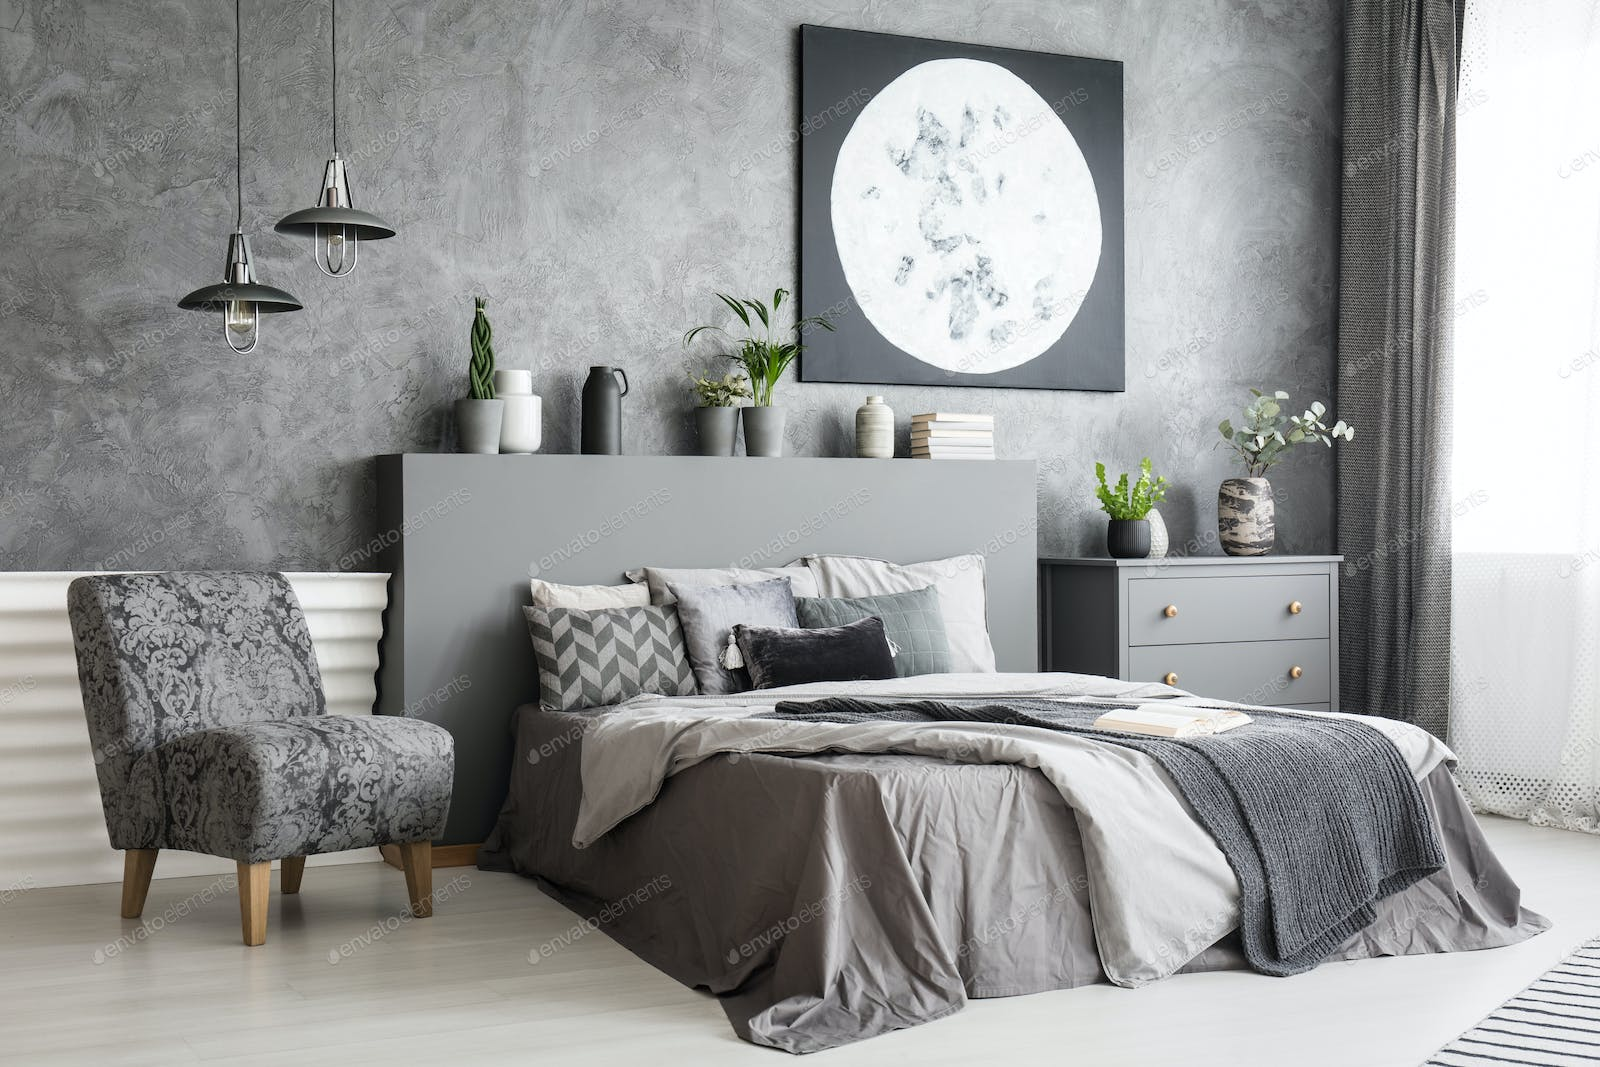 armchair next to bed in grey bedroom interior with BWG3KSZ